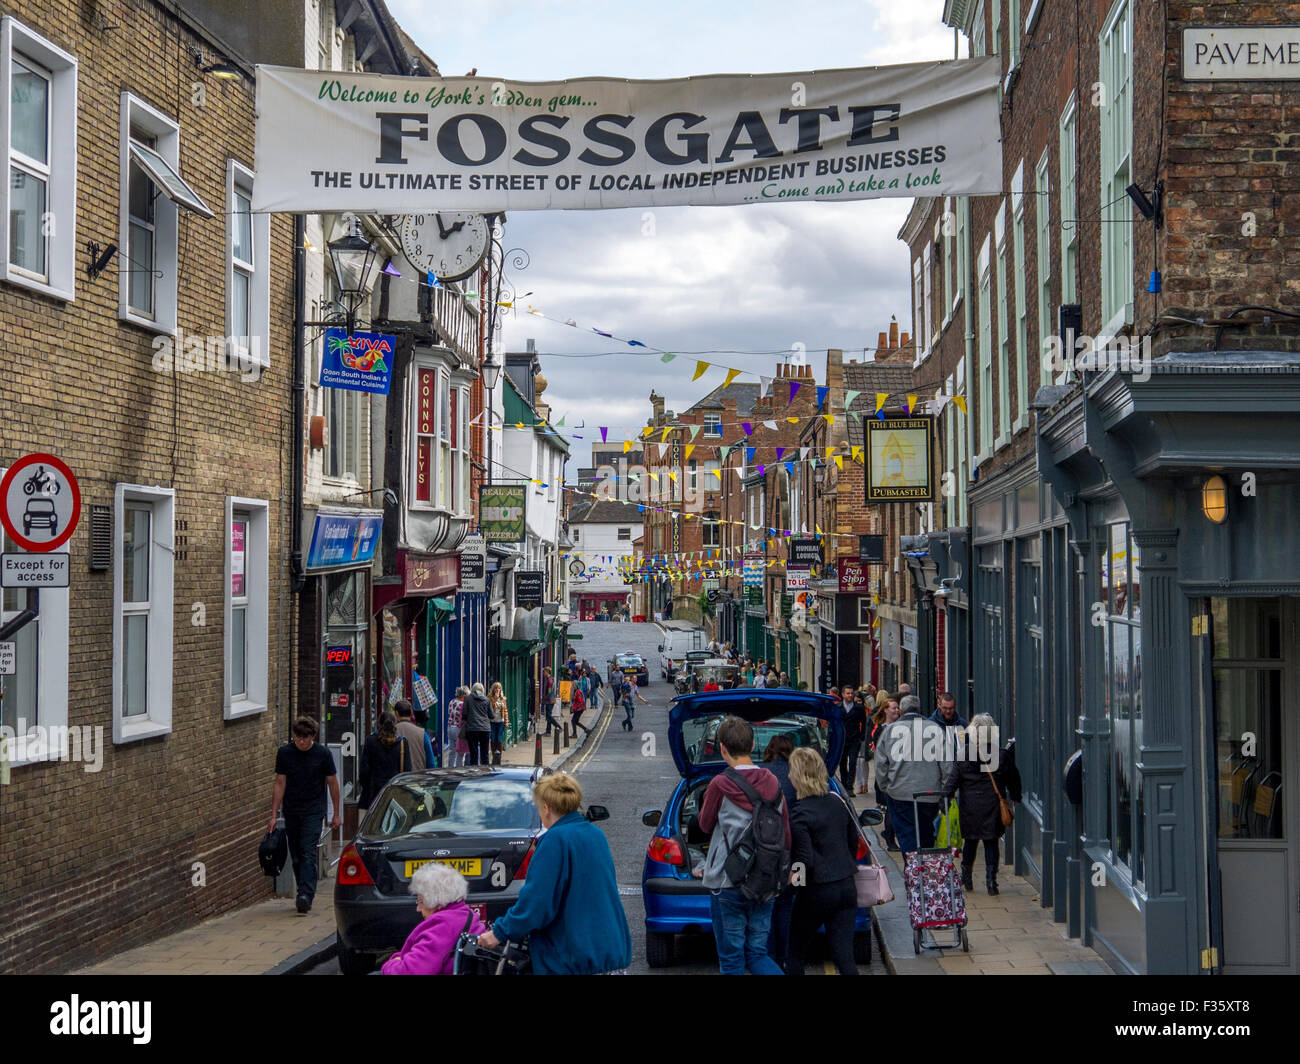 Fossgate in York, a street full of independent businesses - Stock Image